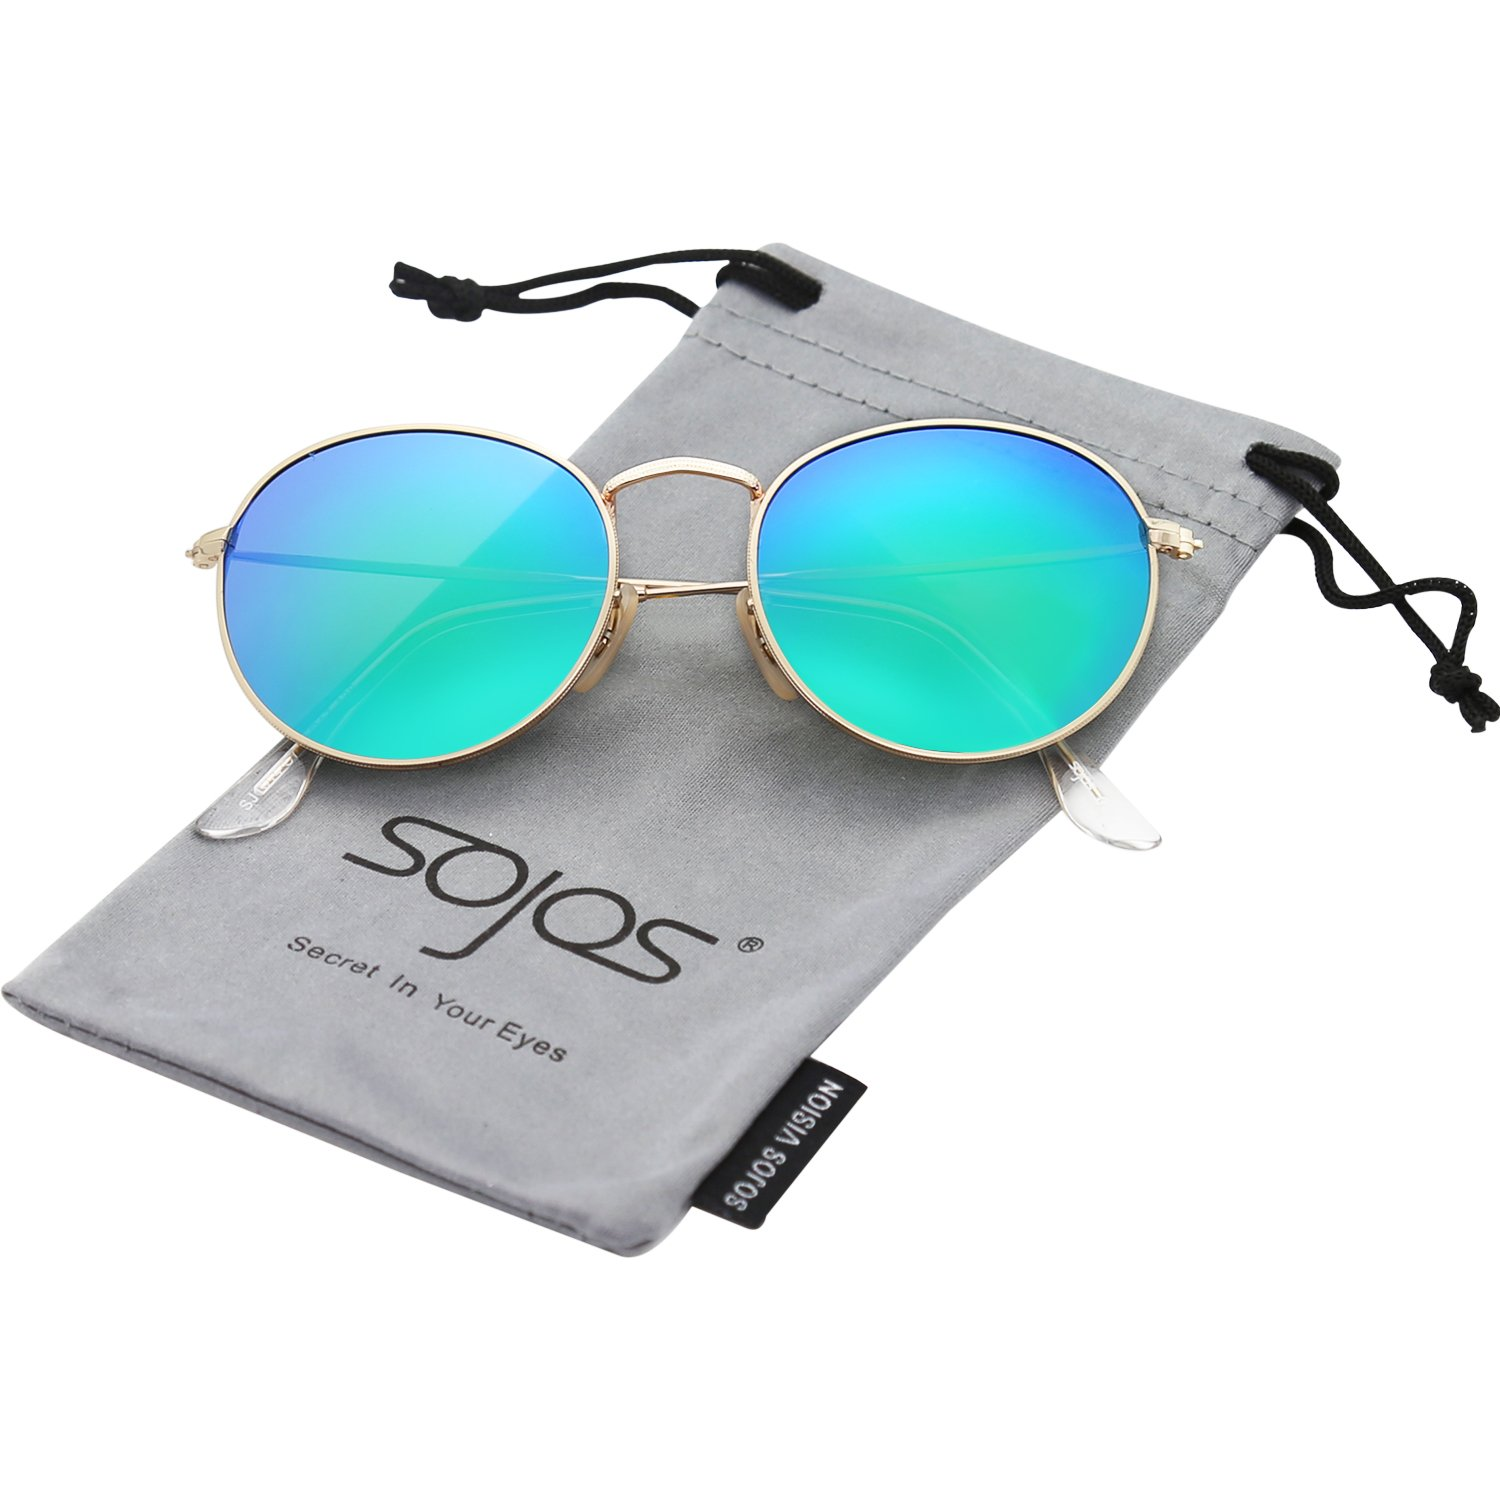 SOJOS Small Round Polarized Sunglasses Mirrored Lens Unisex Glasses SJ1014 3447 with Gold Frame/Green Mirrored Lens